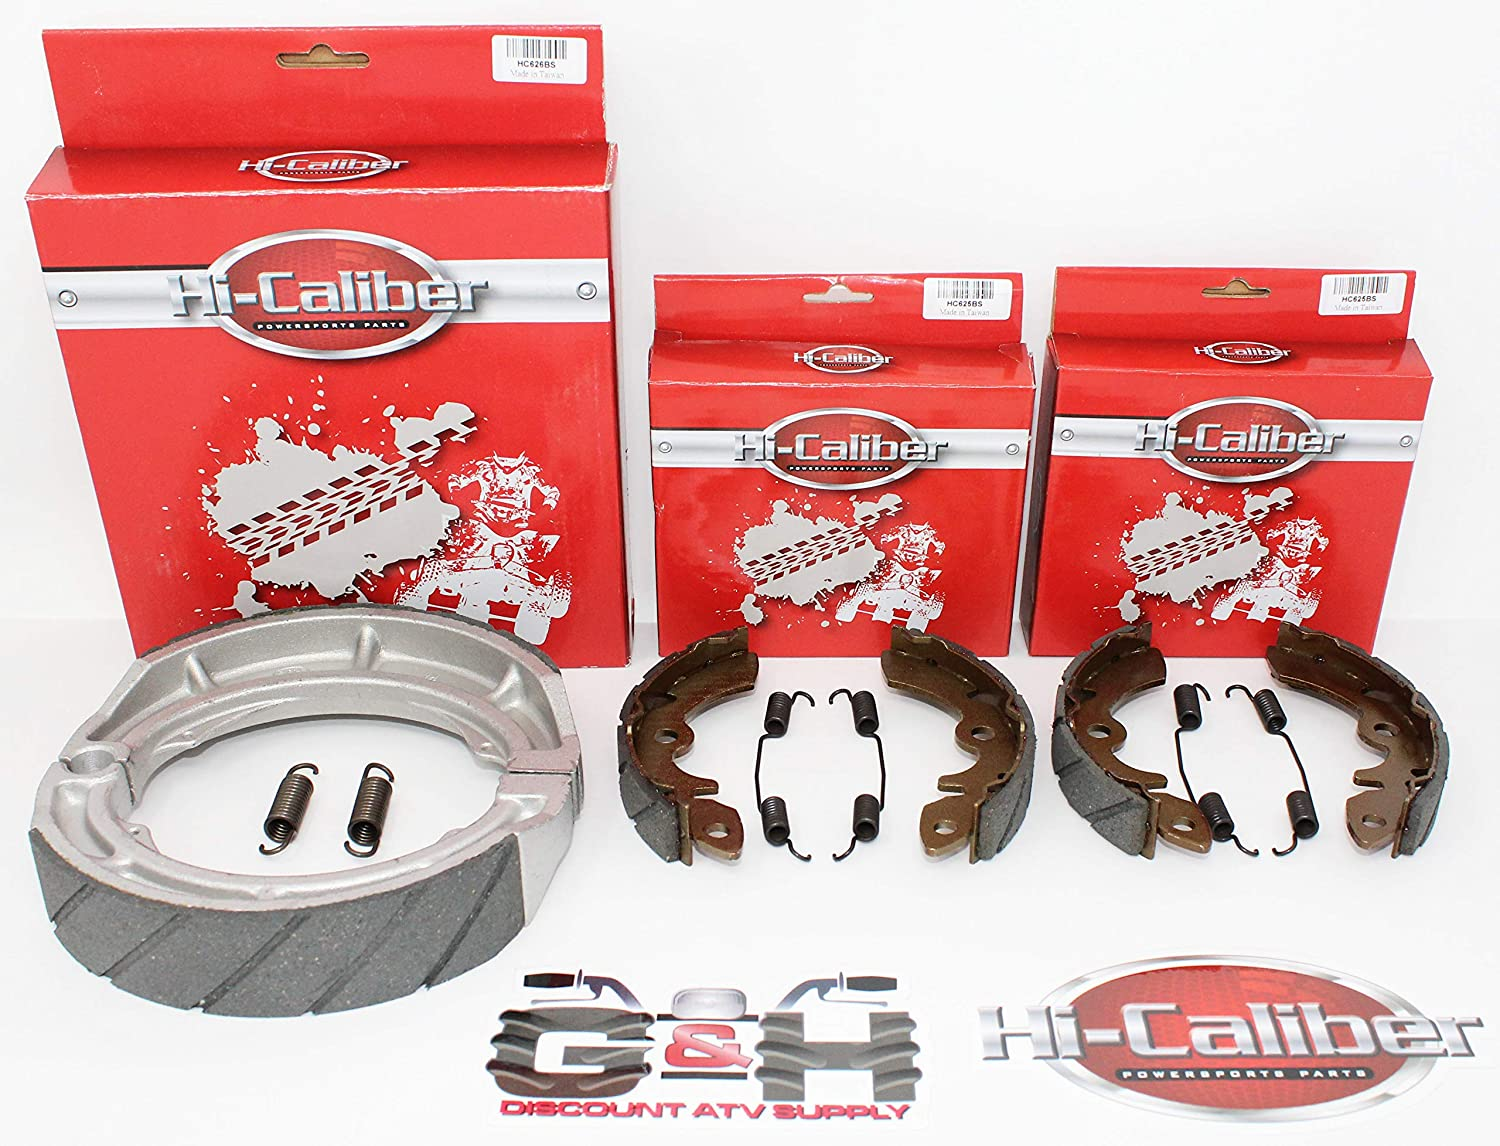 COMPLETE SET of WATER GROOVED Front /& Rear Brake Shoes with Springs for 1985-1989 Suzuki LT 250 300 Quadrunner ATVs